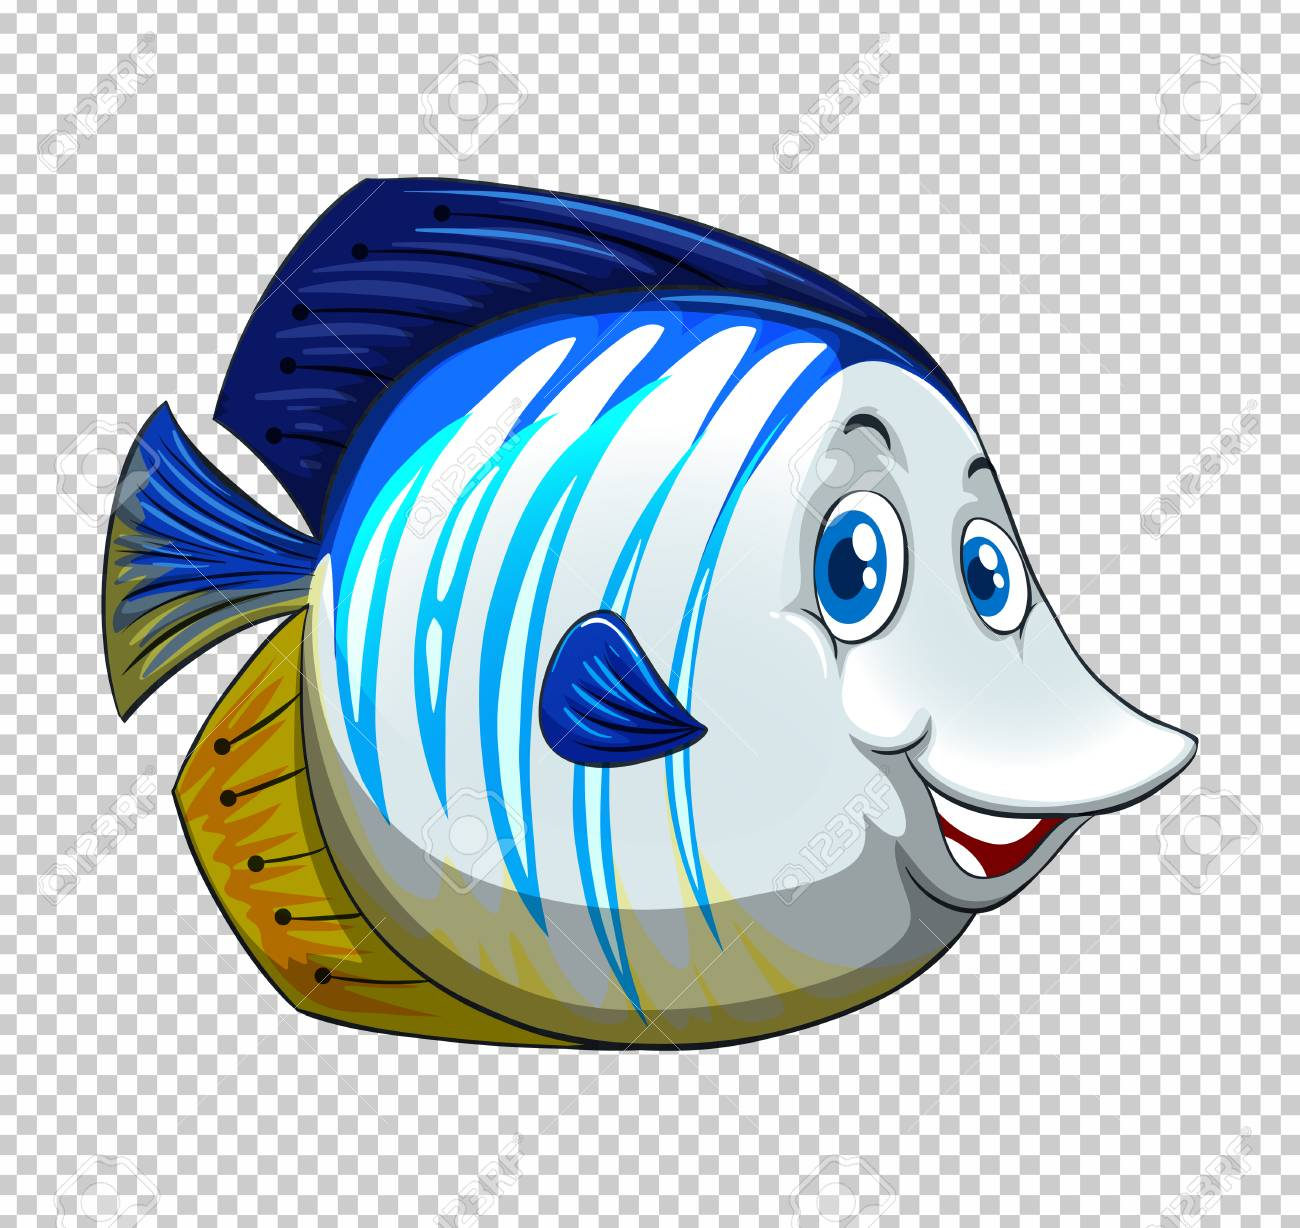 Blue fish on transparent background illustration.